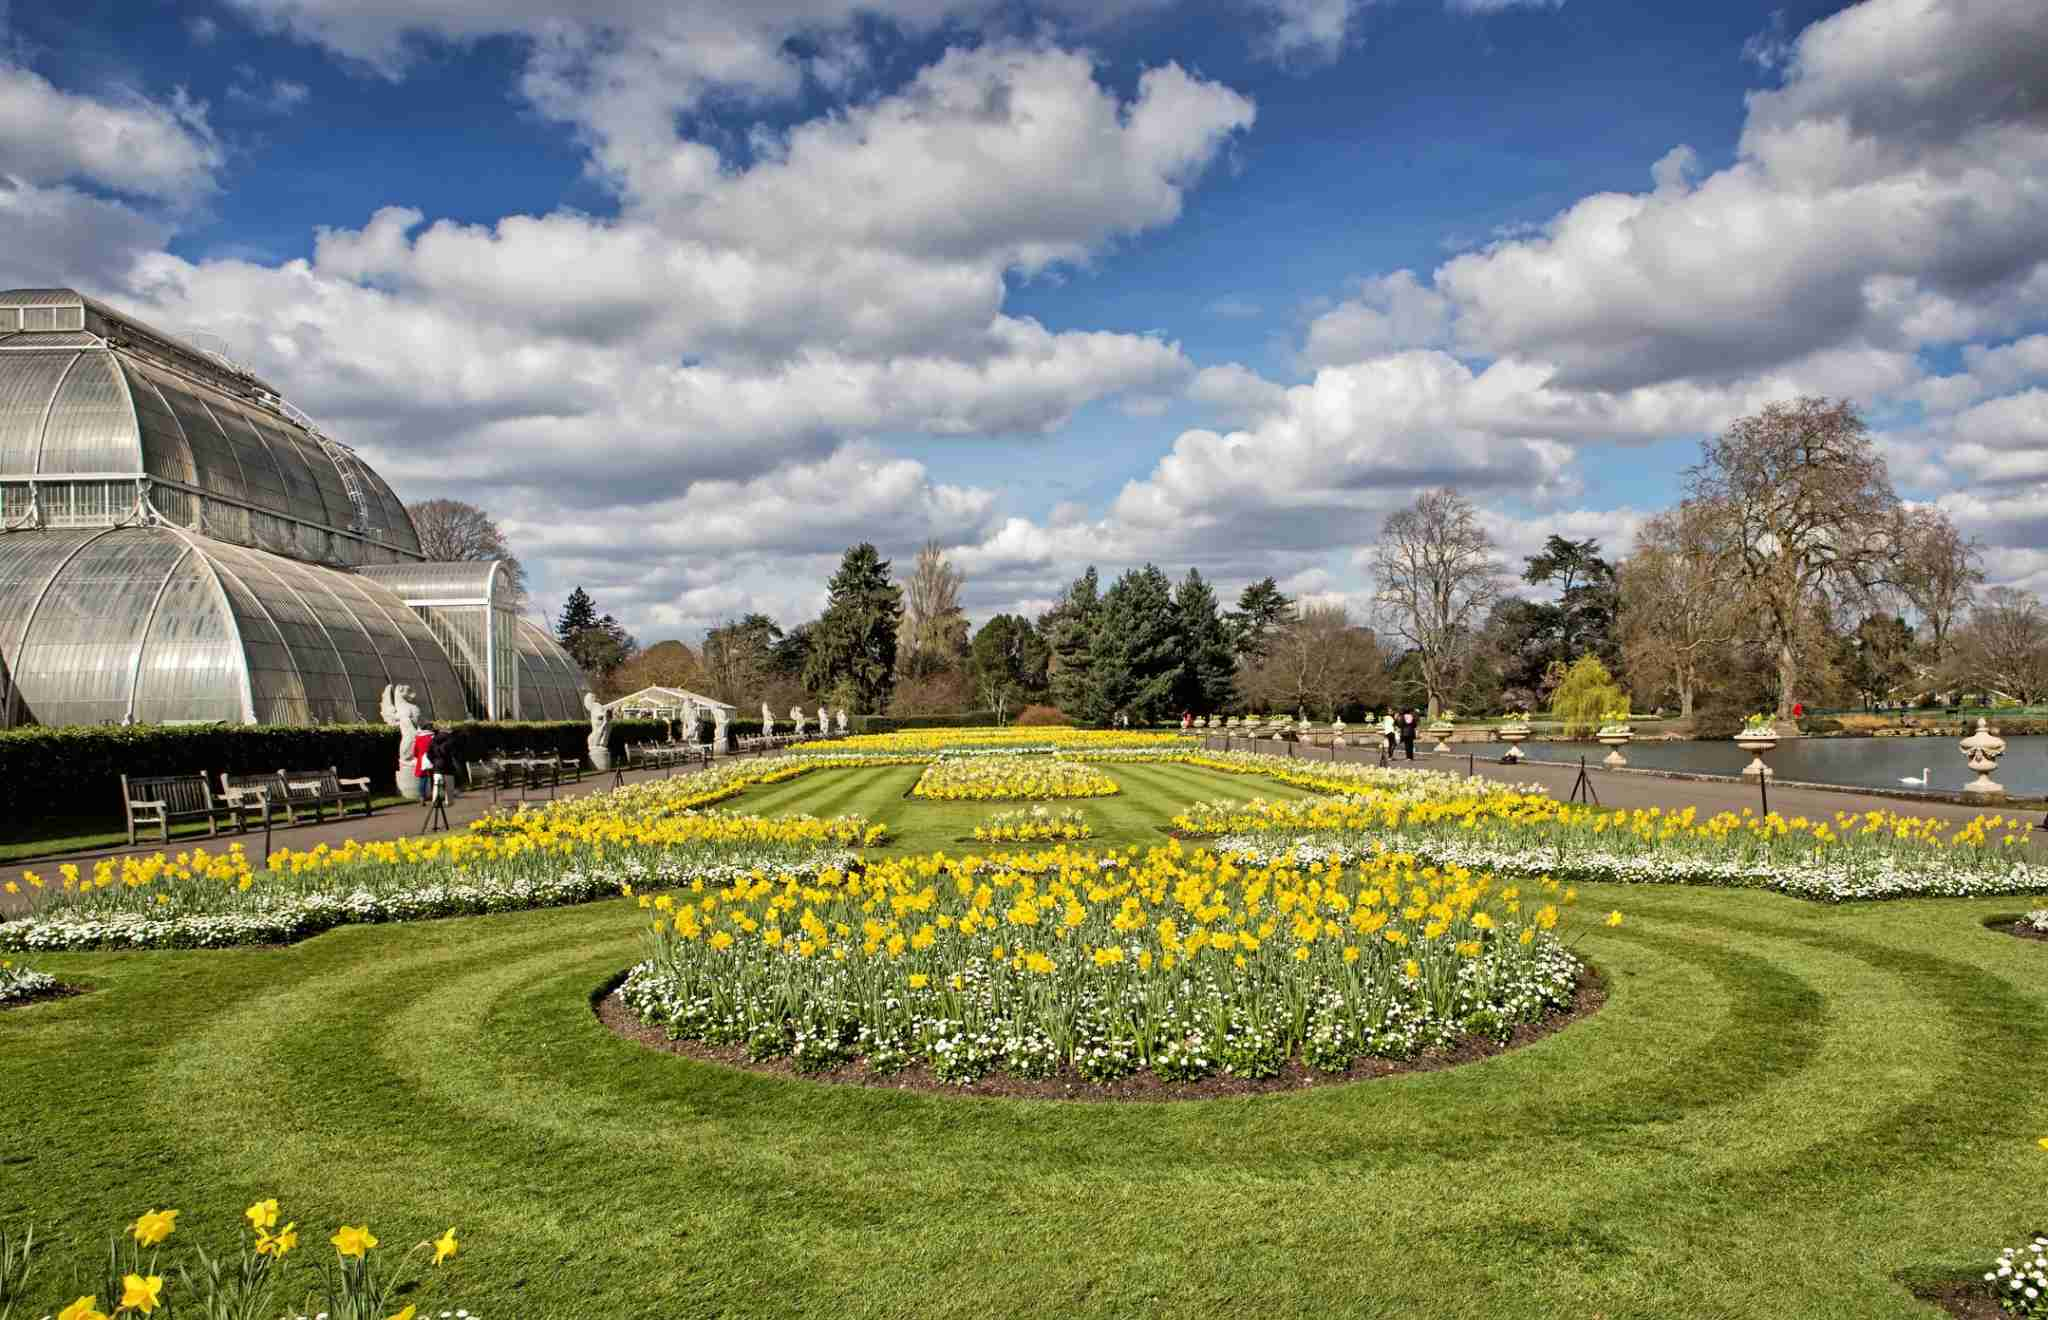 The Royal Botanic Gardens, Kew was founded in 1759 and declared a UNESCO World Heritage Site in 2003. (Photo by mitakag/The Points Guy)